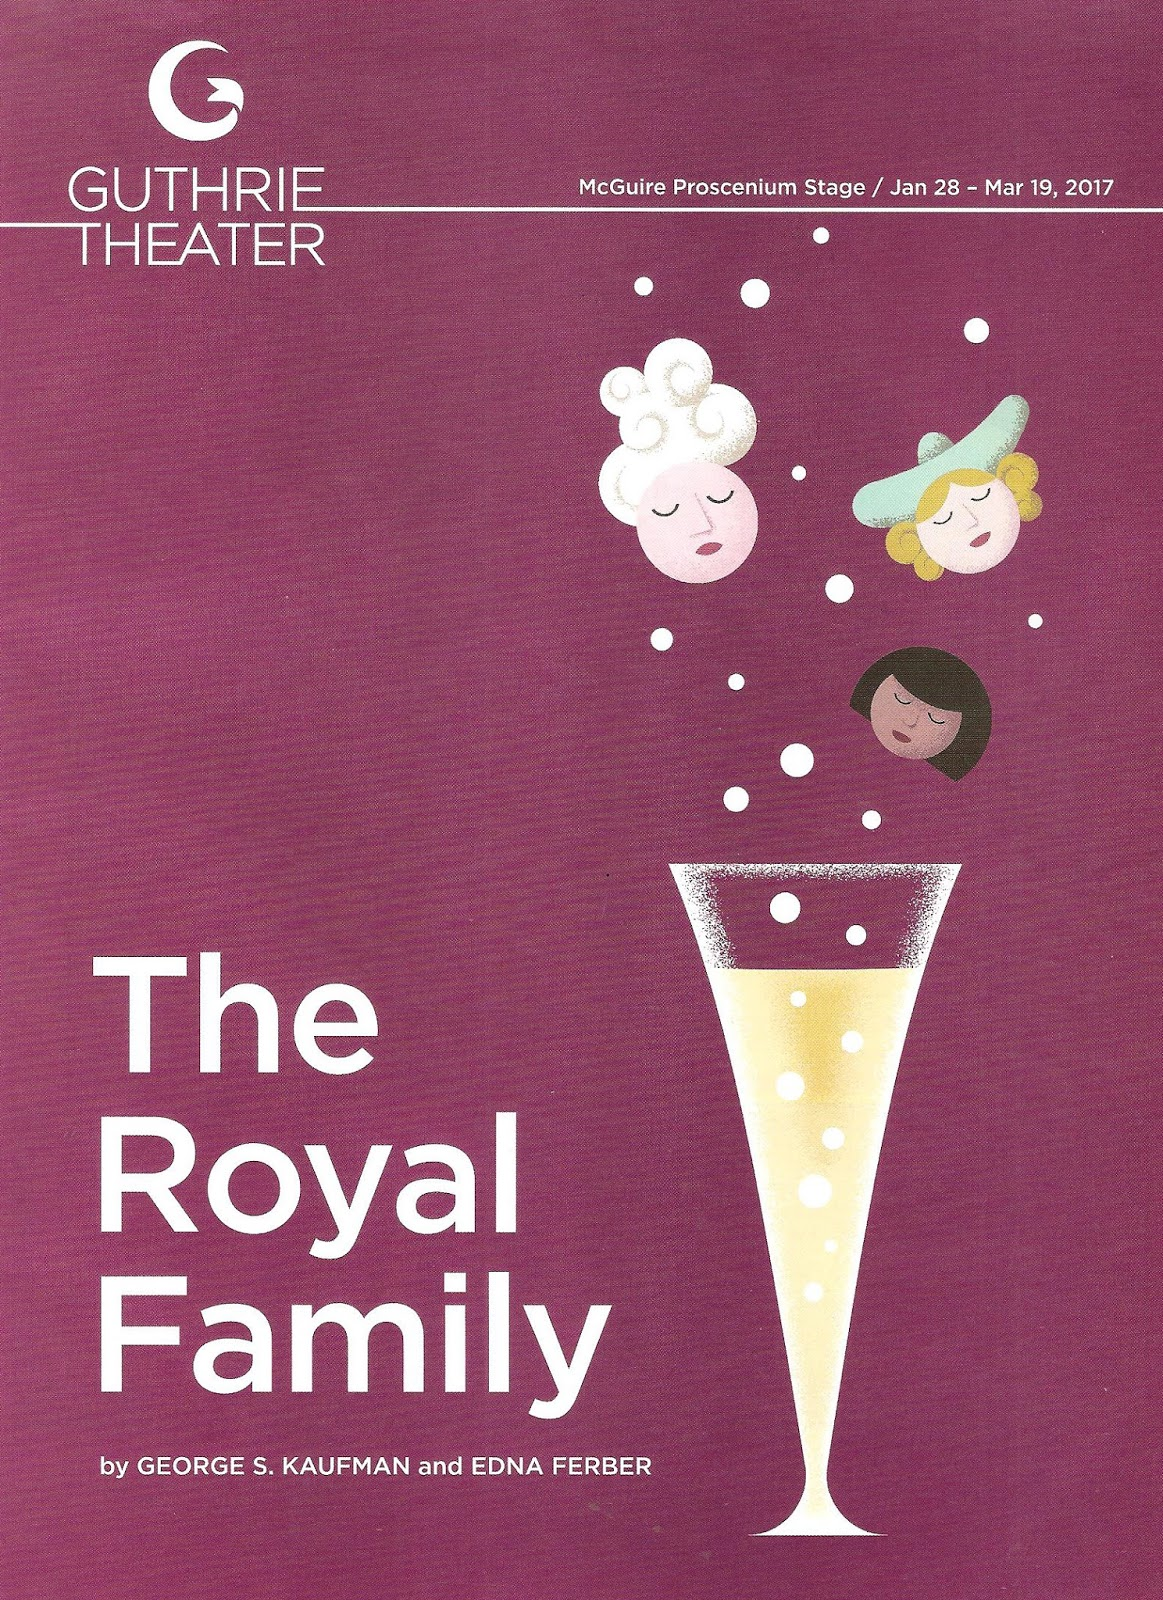 Cherry and spoon the royal family at the guthrie theater the royal family at the guthrie theater biocorpaavc